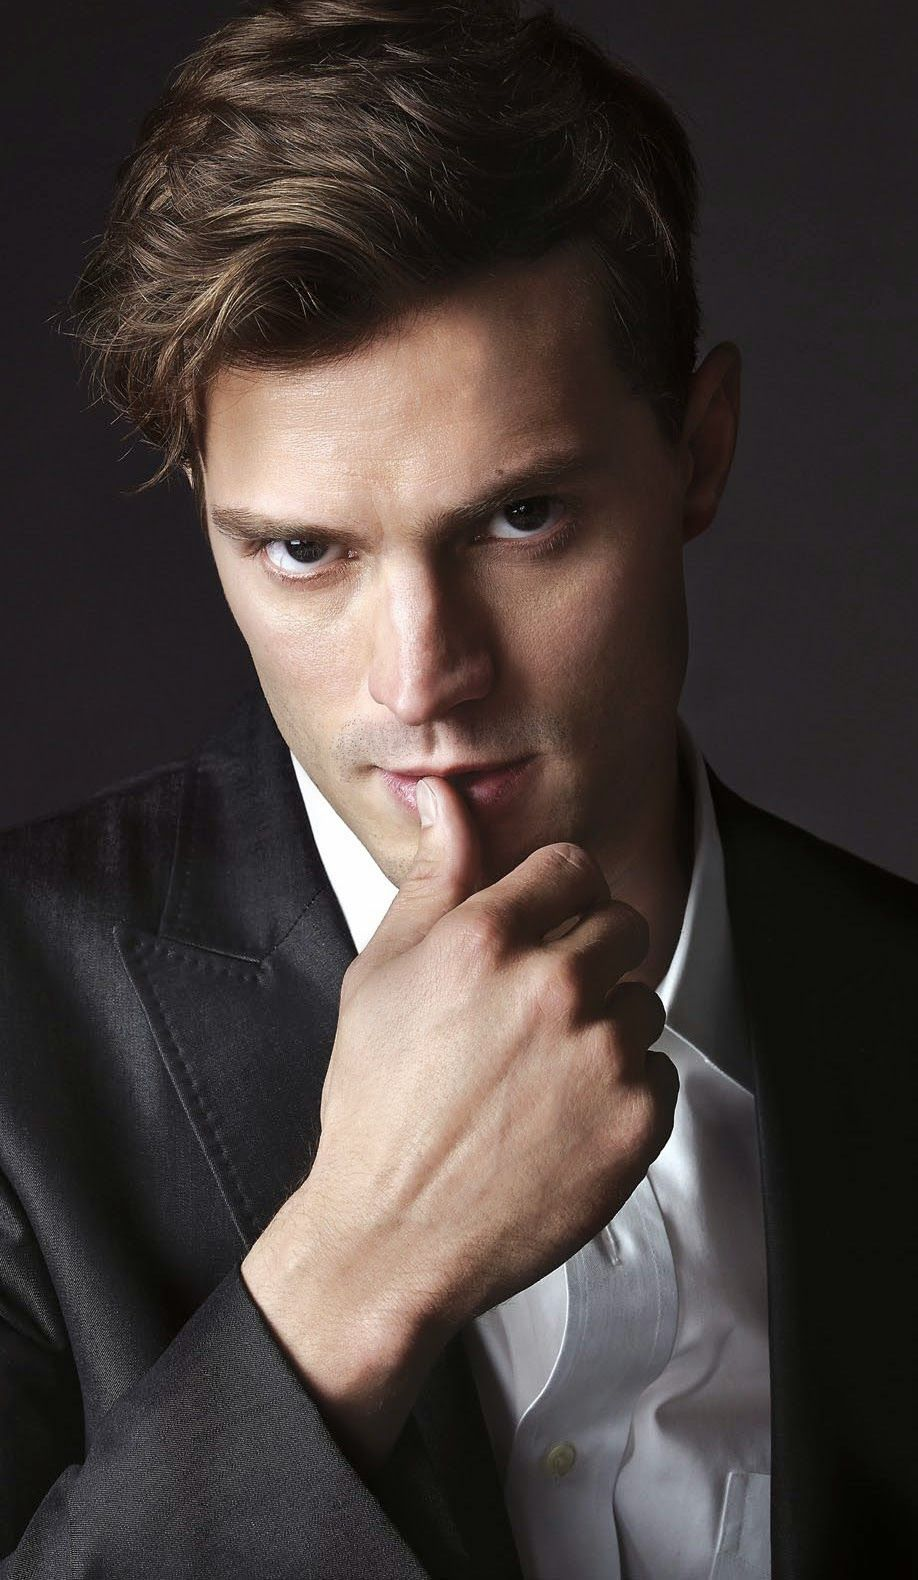 Fifty Shades Of Grey Promotional Photoshoot Con Imagenes